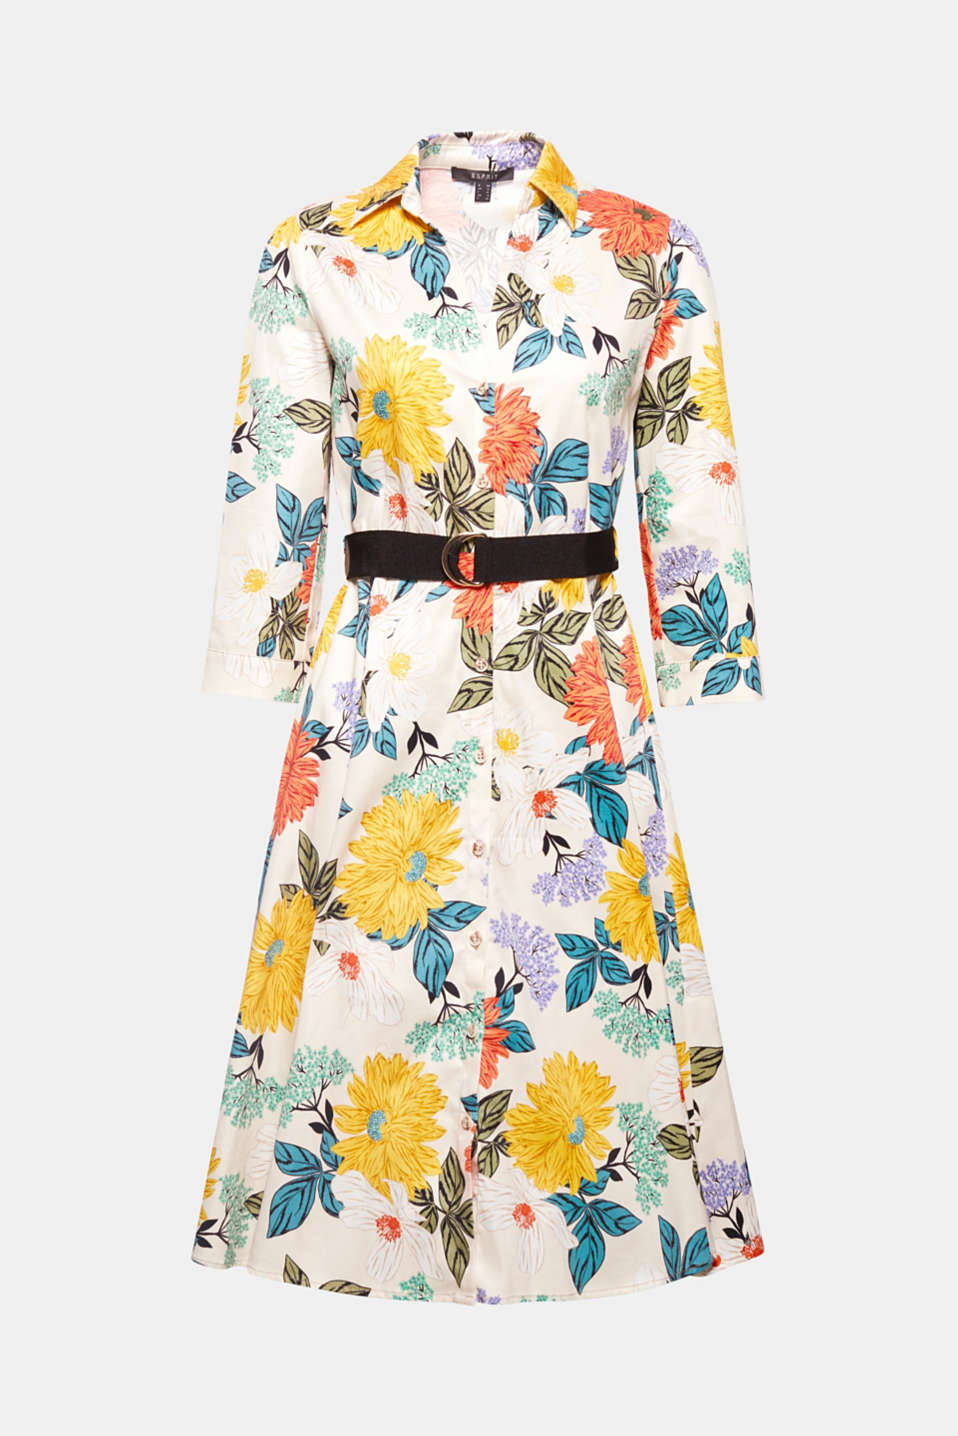 This fitted, figure-accentuating shirt dress comes in a midi length with a floral print and a grosgrain ribbon belt. Made of stretchy cotton fabric for the perfect fit and a high level of comfort!